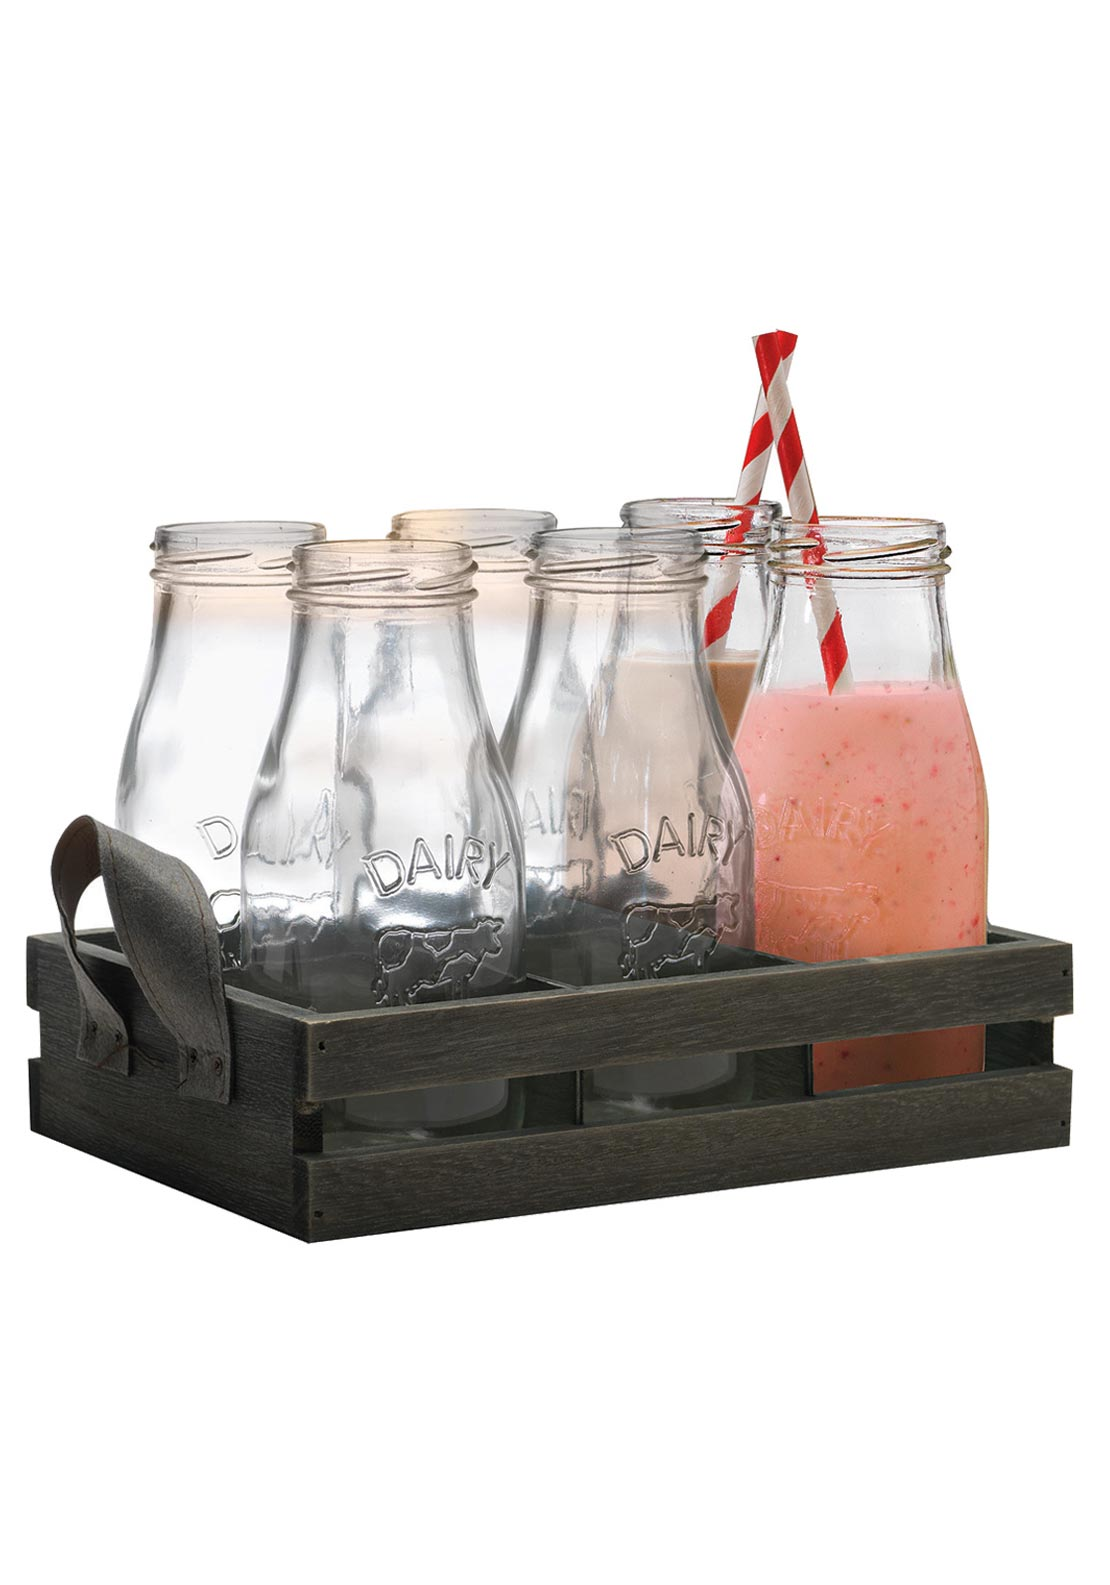 Eddingtons Country Milk Bottles Set, 13 piece